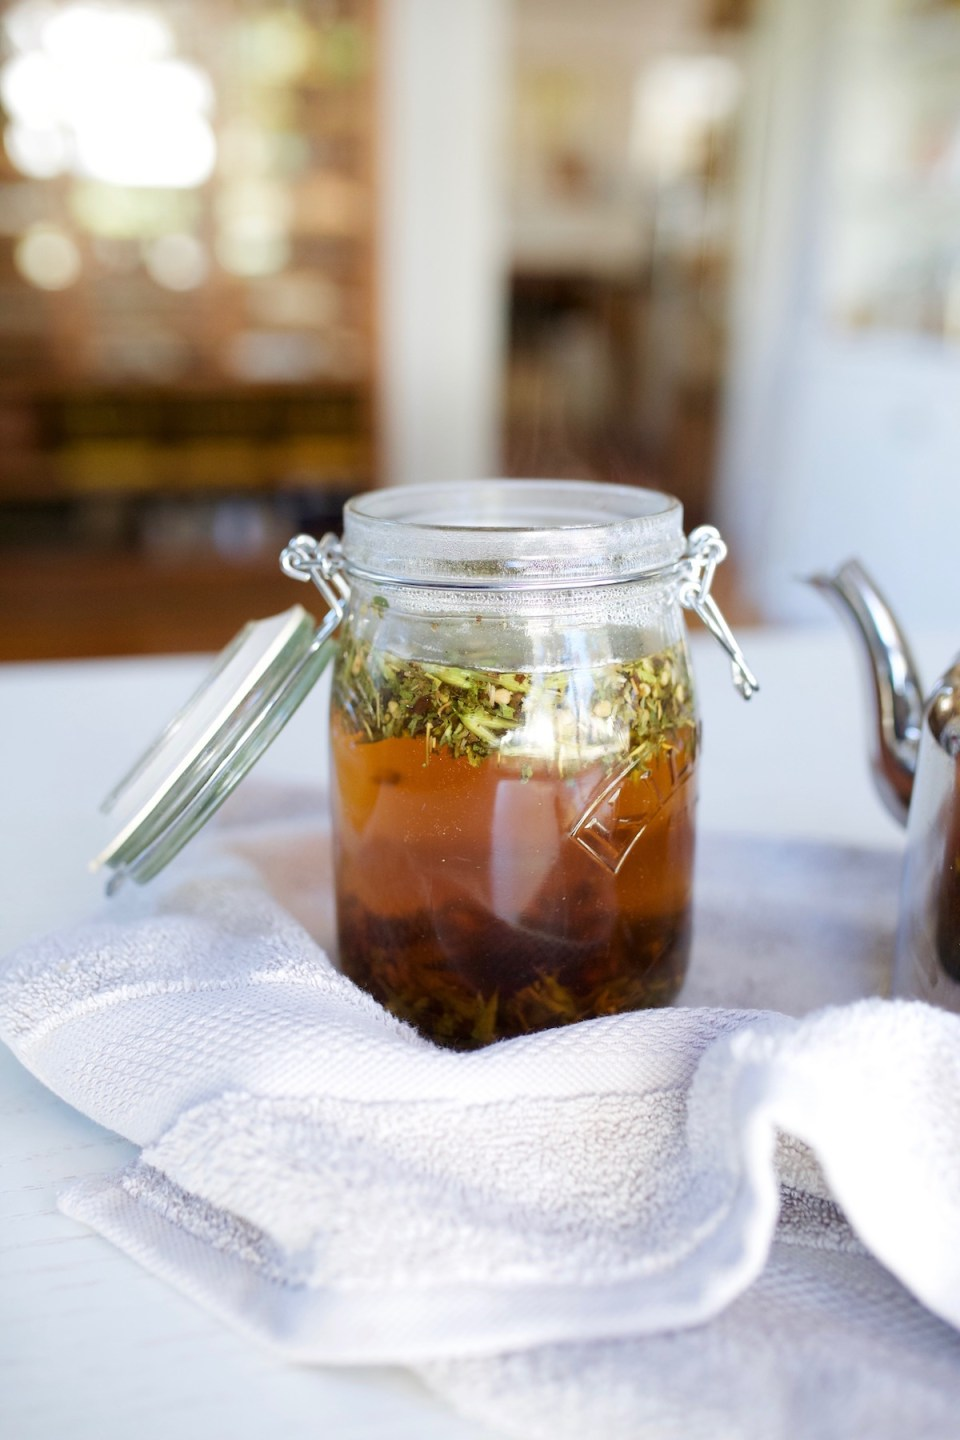 Herbal Tea or Herbal Infusion: What's the Difference? | Herbal Academy | When should you use an herbal tea or herbal infusion? What's the difference? While the two are mostly similar, there are a couple of differences to note.